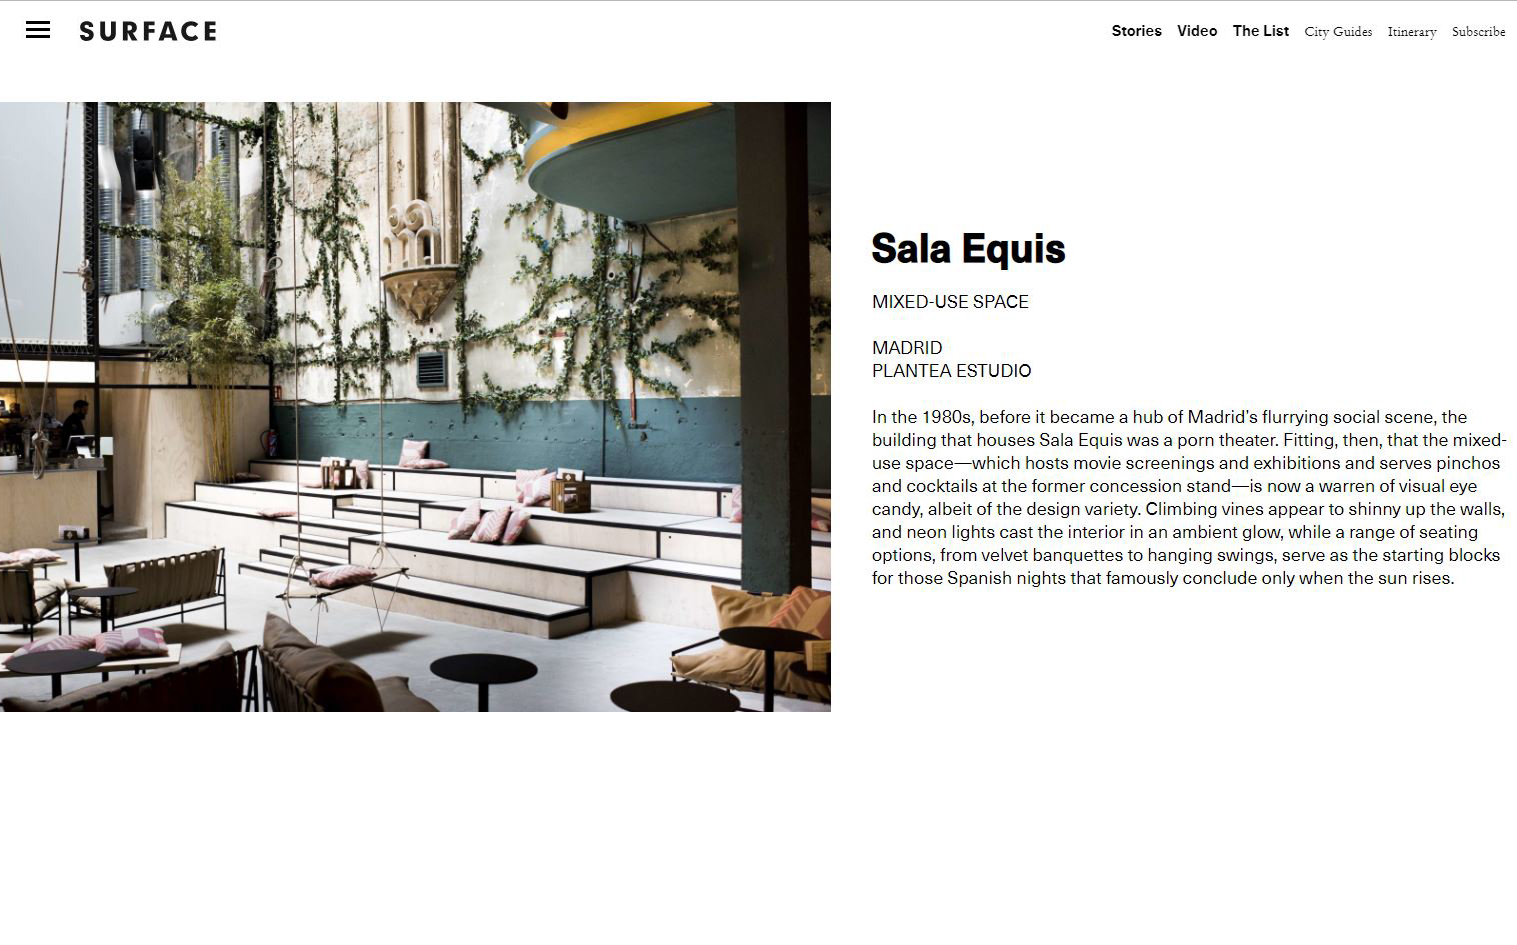 Plantea Estudio galardonado por la revista Surface Mag con el premio Surface Travel Awards